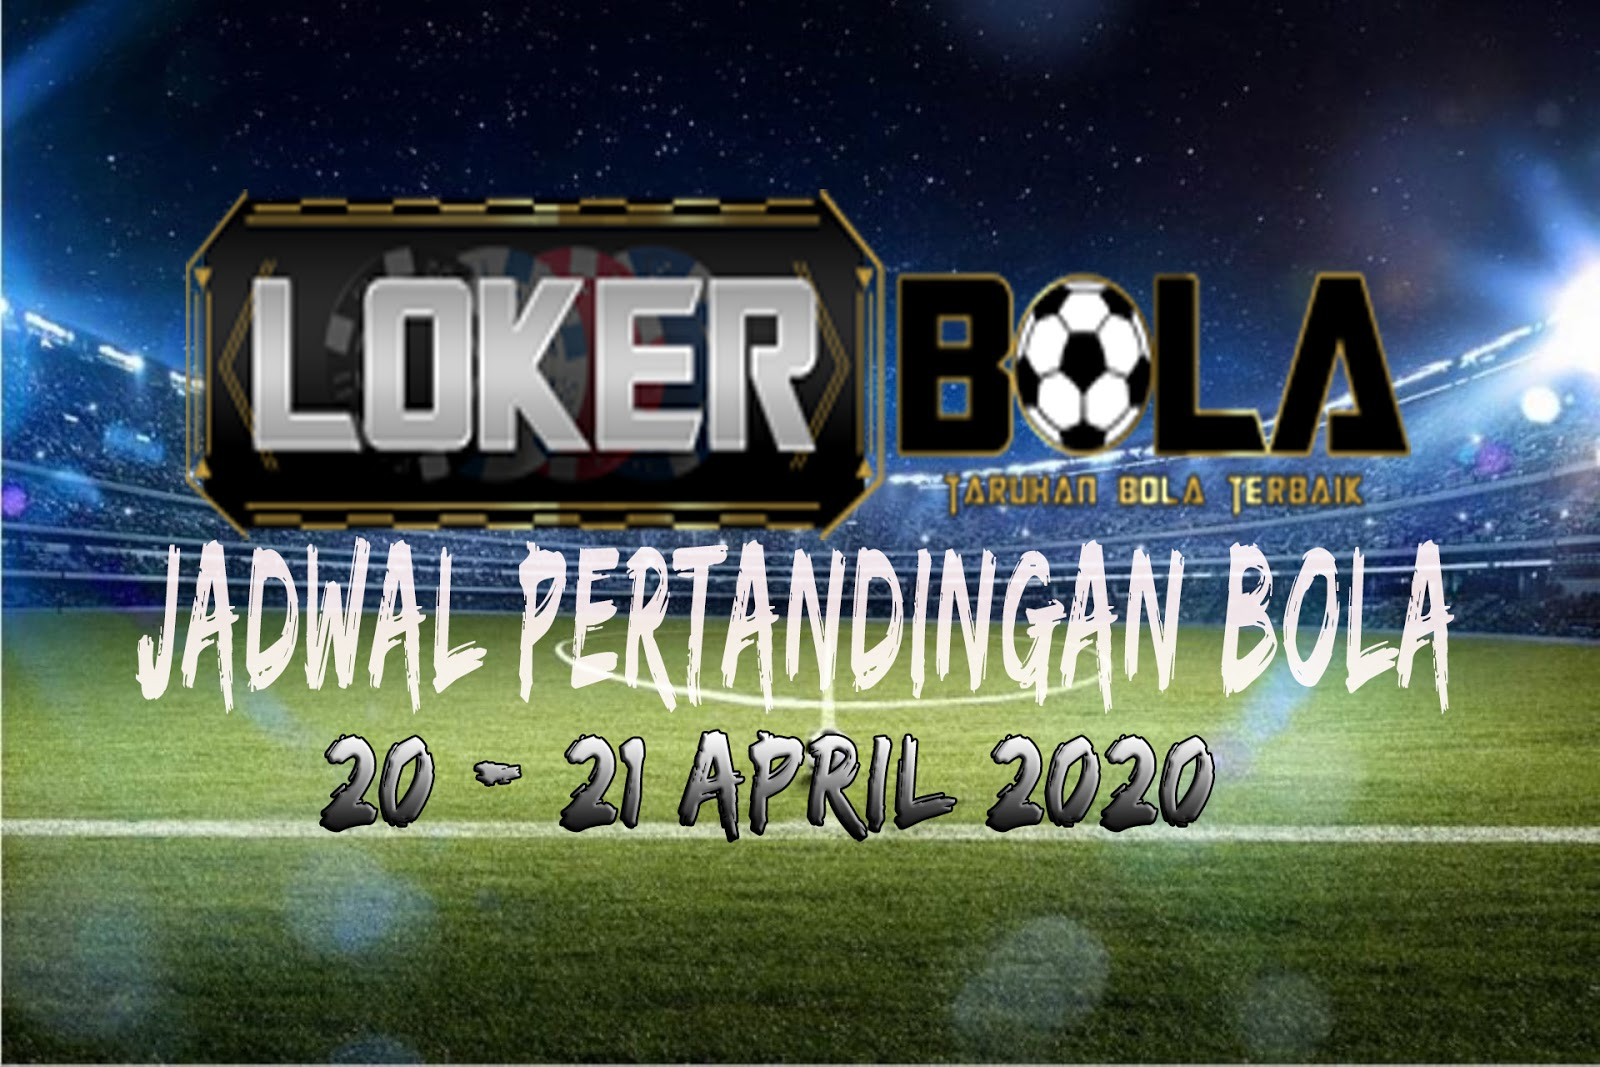 JADWAL PERTANDINGAN BOLA 20 – 21 APRIL 2020